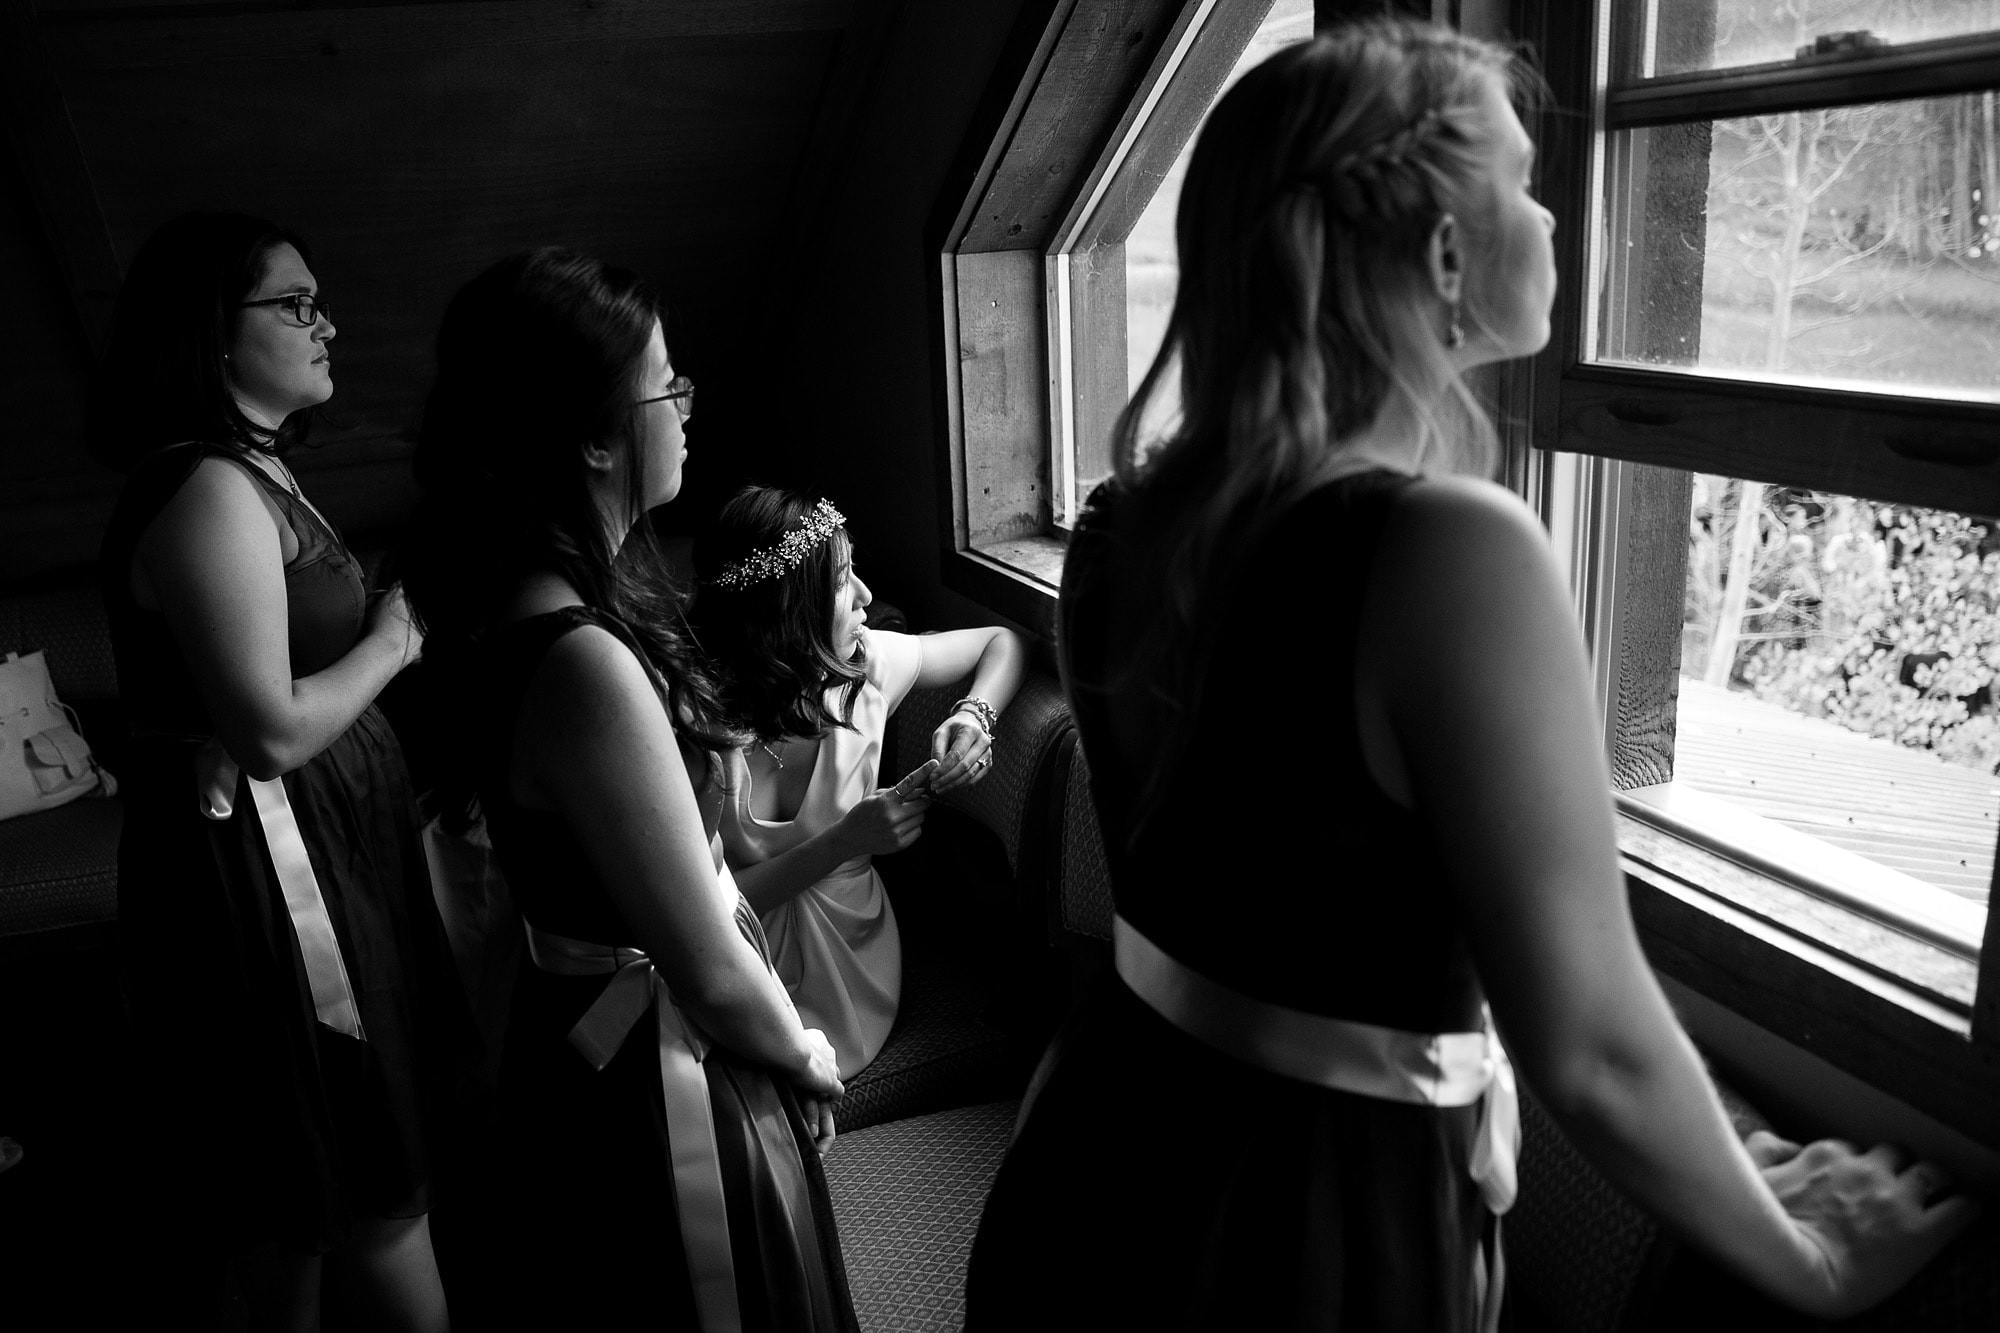 The girls peek out the window at Lynn Britt Cabin before the wedding ceremony starts